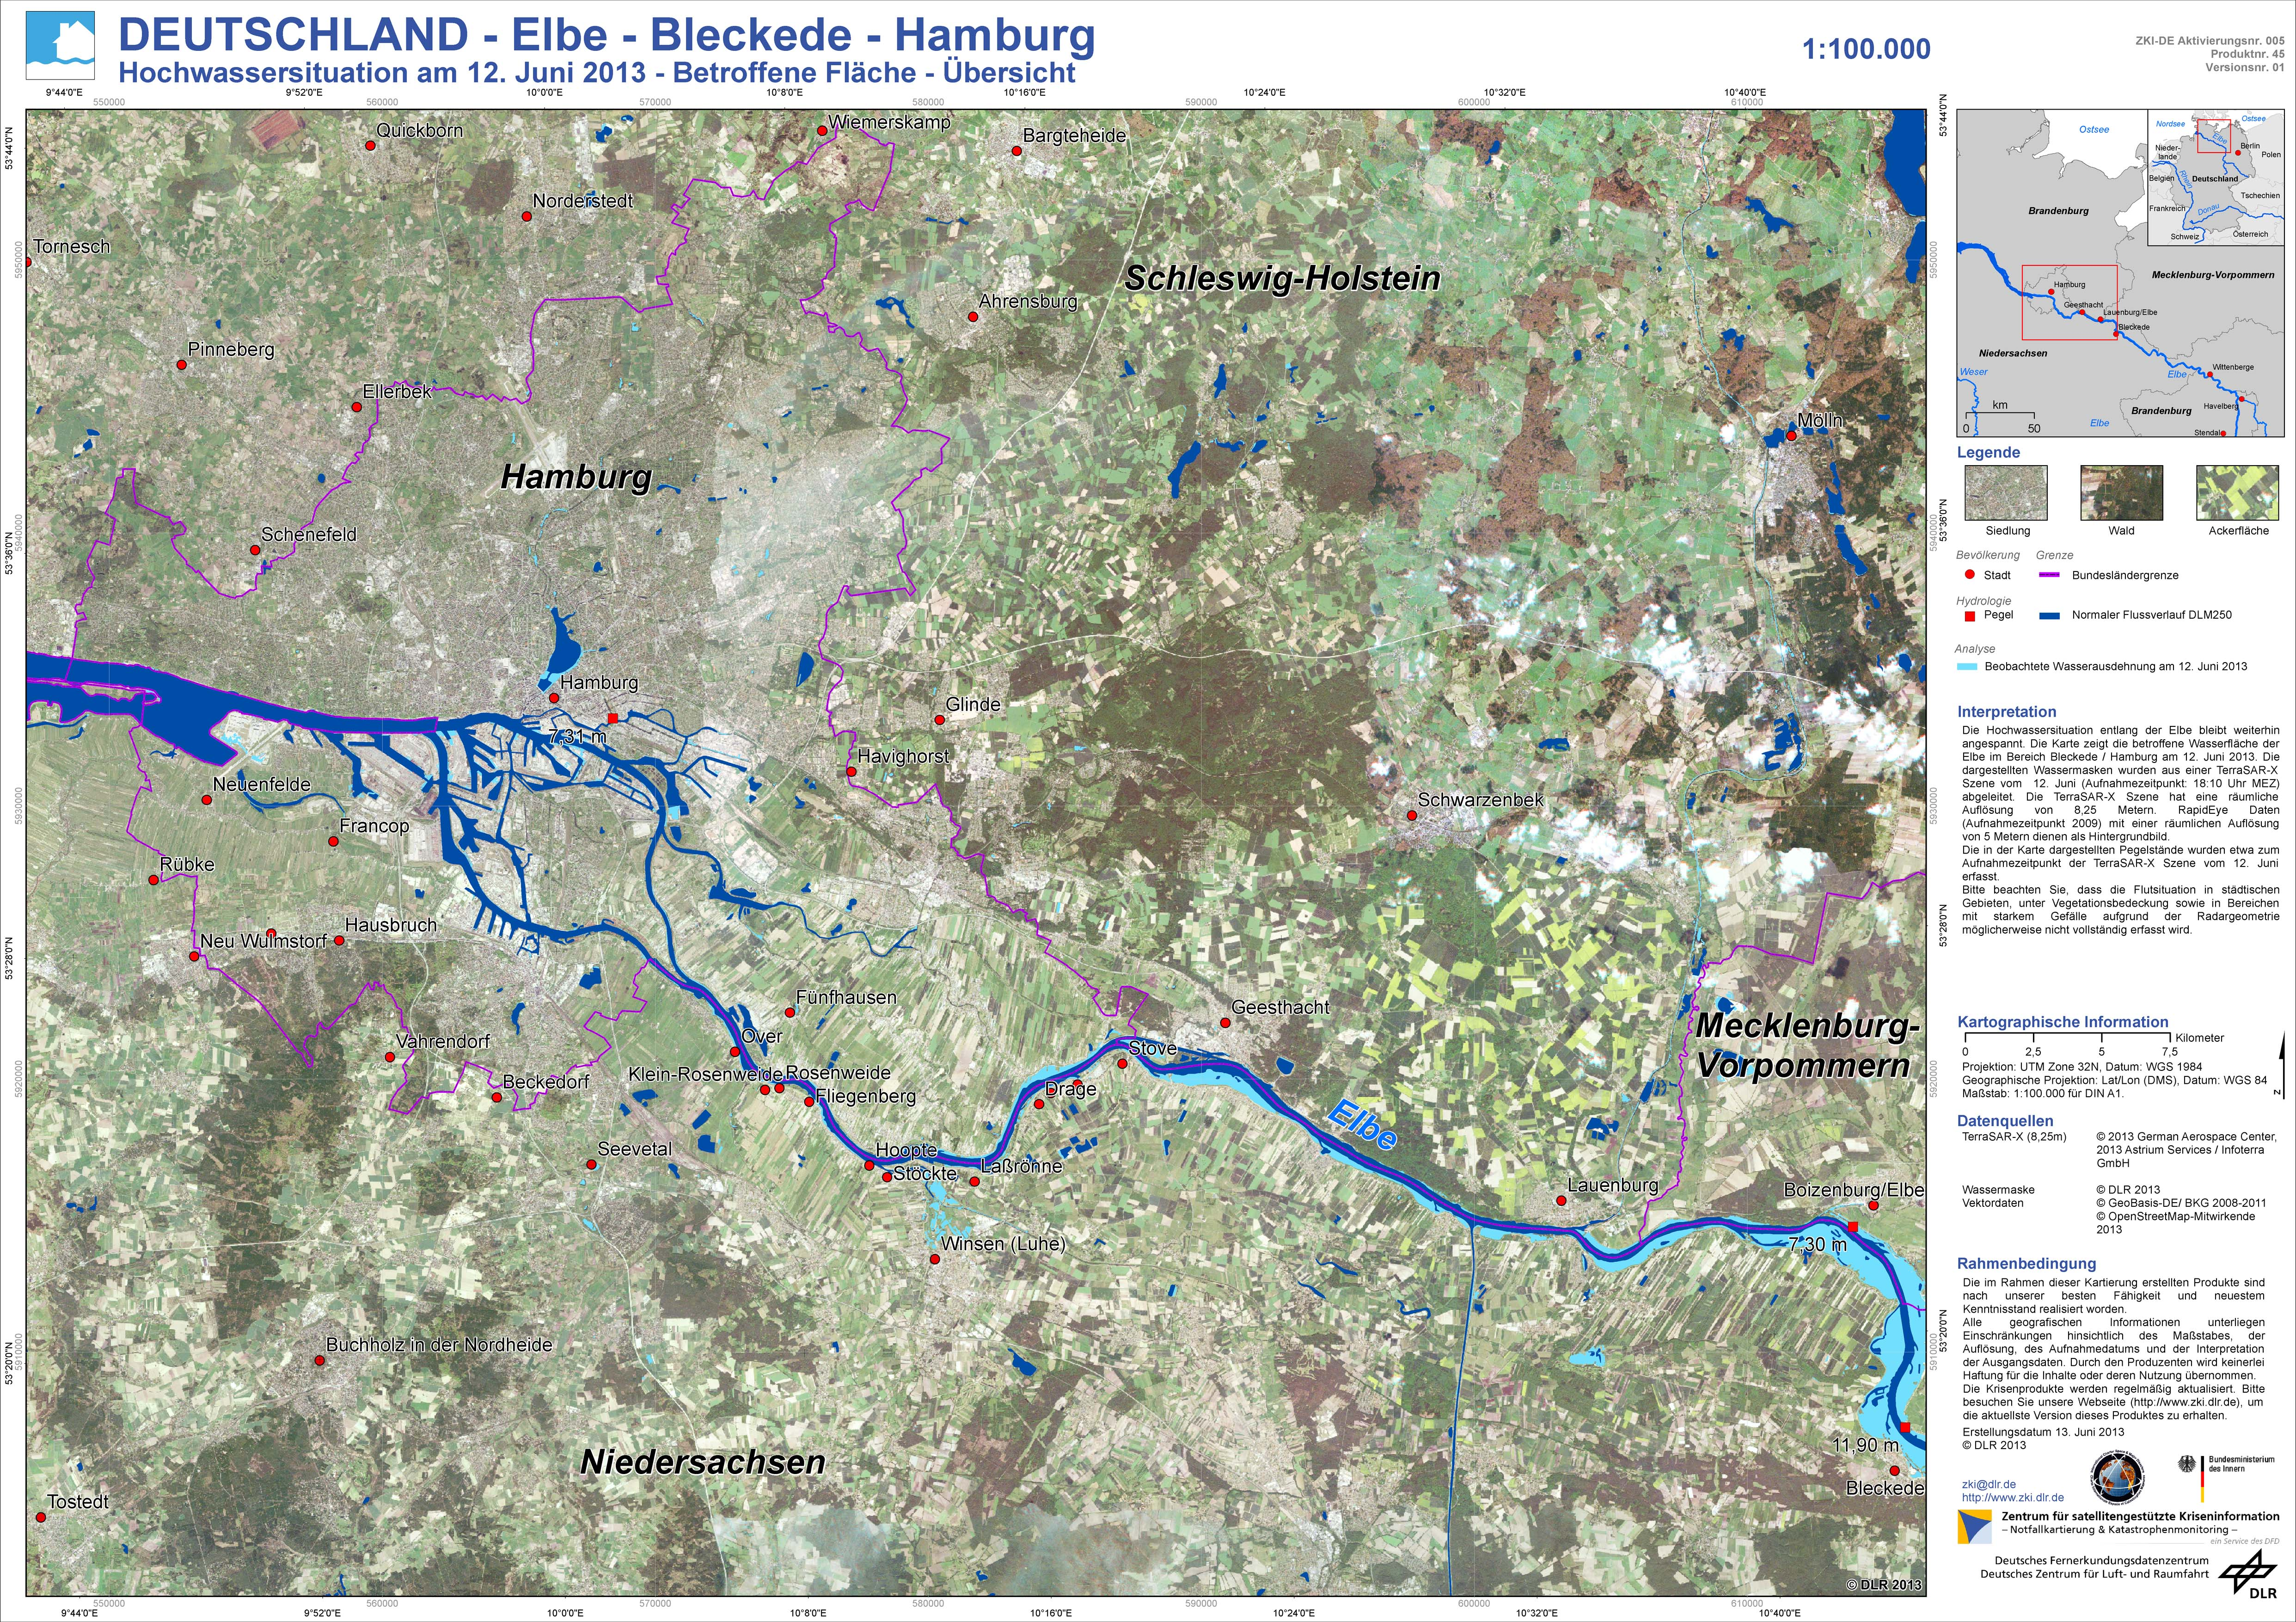 Flood Extent Map for Hamburg, Germany in June 2013